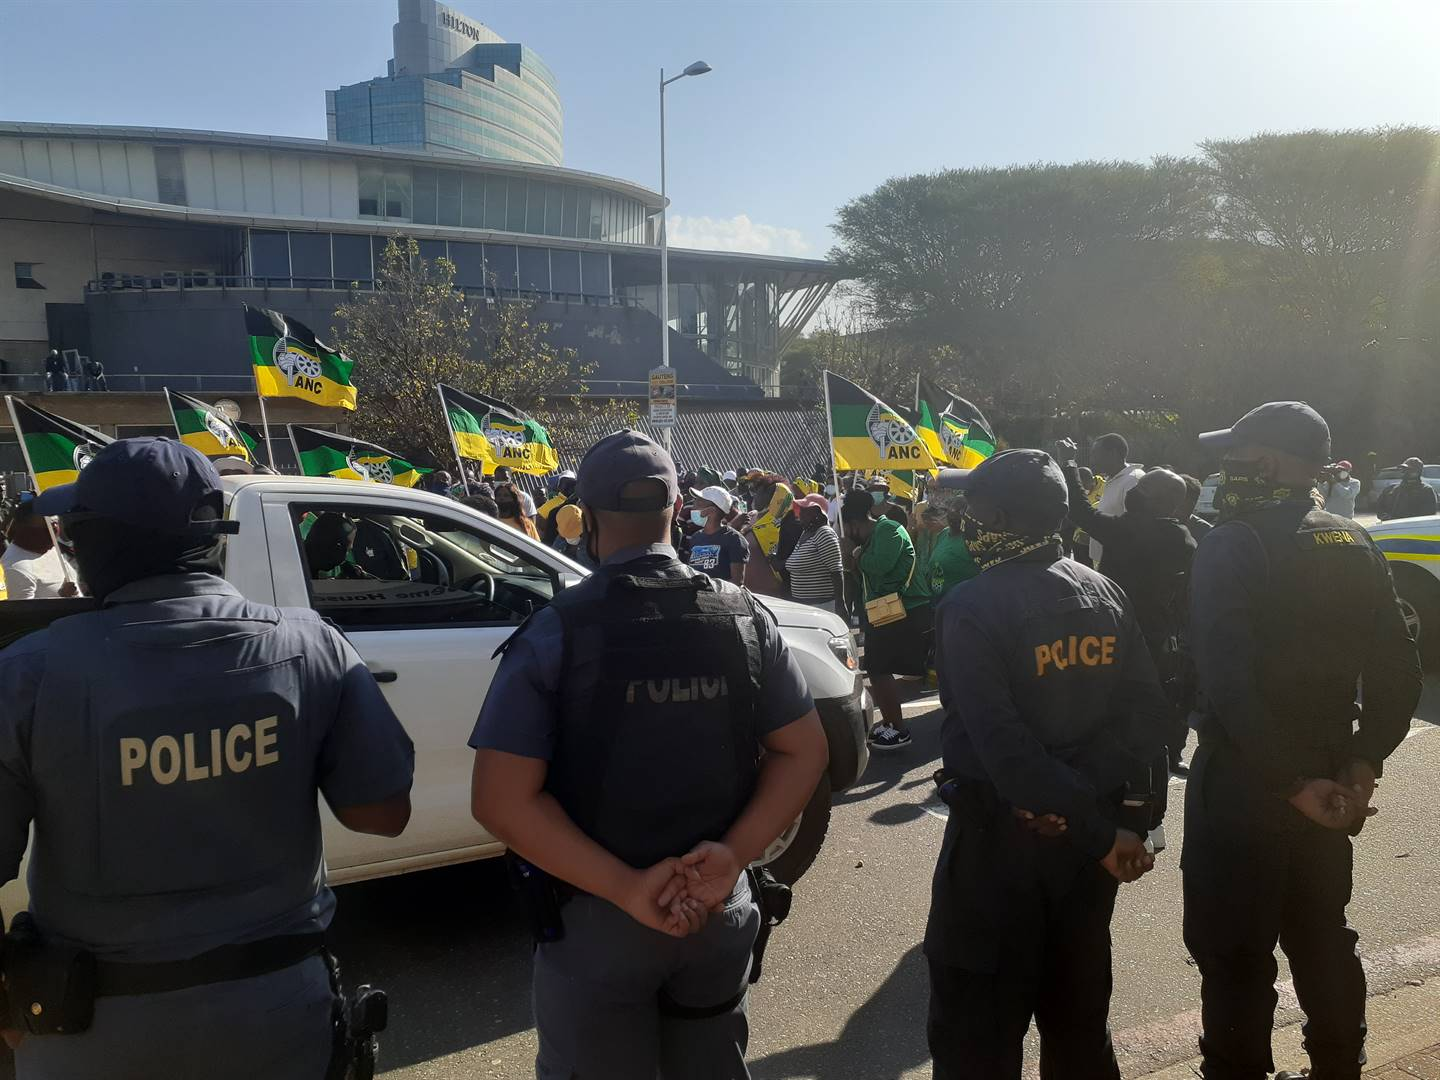 Police watch on as a group of ANC supporters gather outside the ANC provincial offices in Durban.